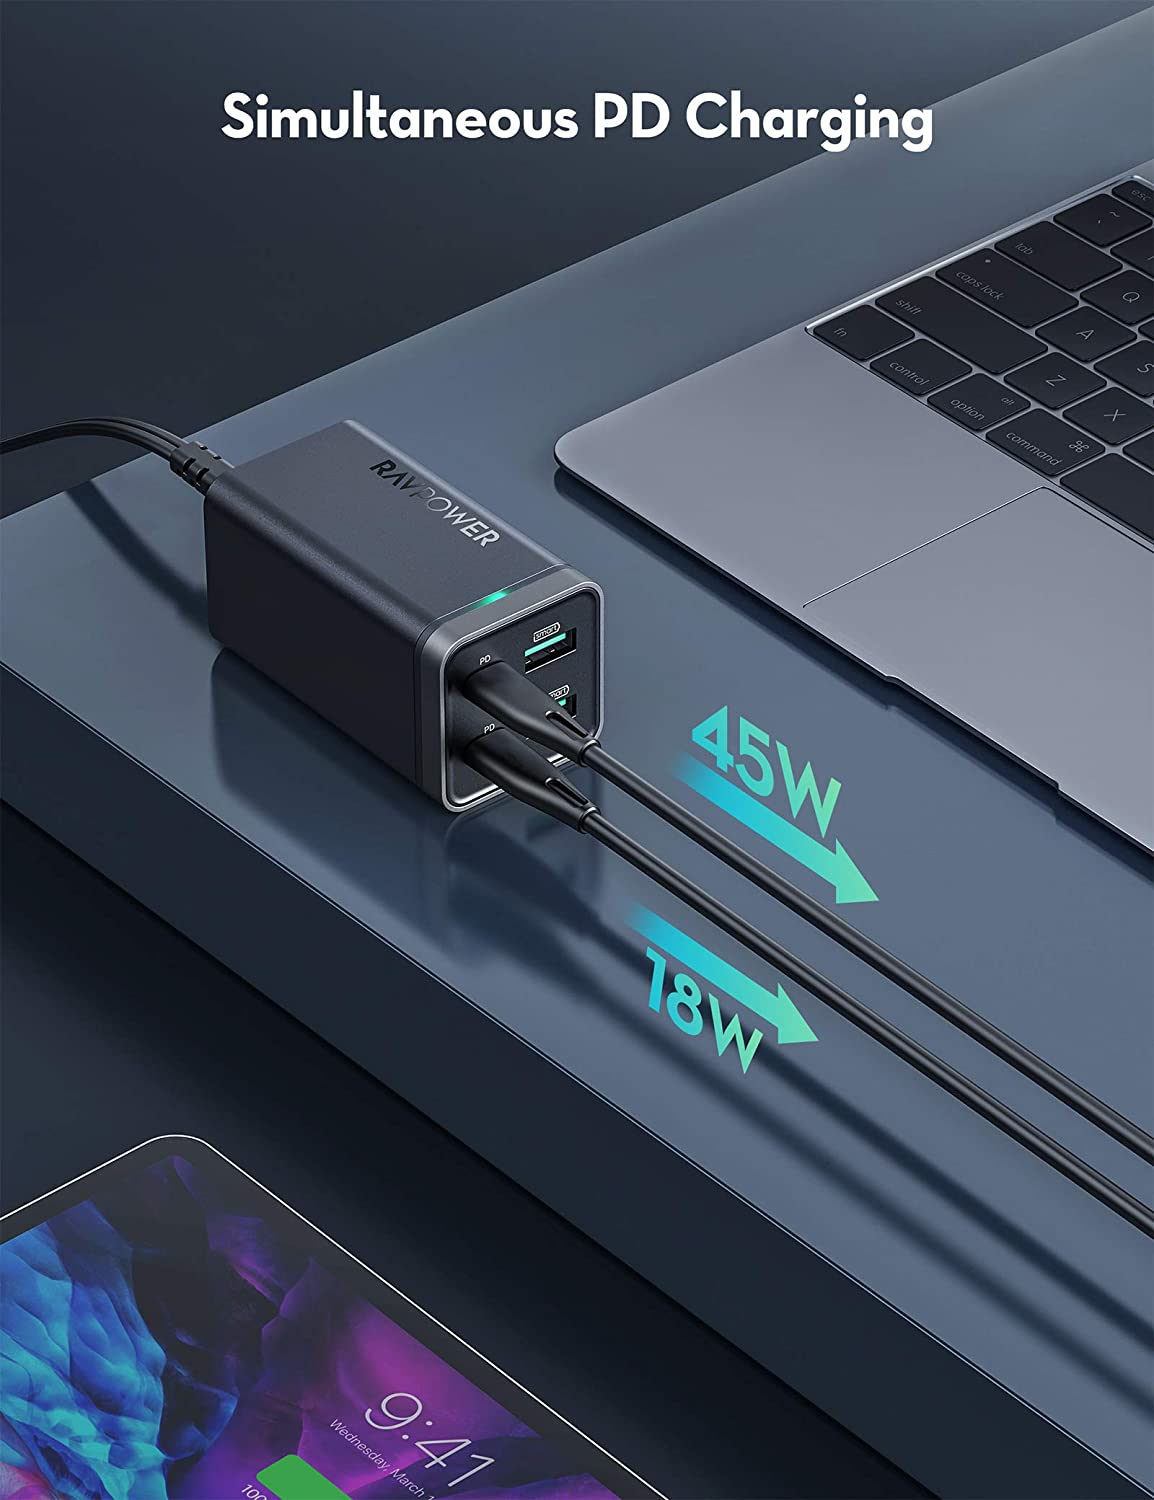 USB C Charger, RAVPower 65W 4-Port Desktop USB Charging Station [GaN Power Tech] with 2 USB C Ports + 2 USB A Ports for MacBook Pro/Air, Dell XPS 13, iPad Pro, iPhone, Nintendo Switch, Galaxy and More